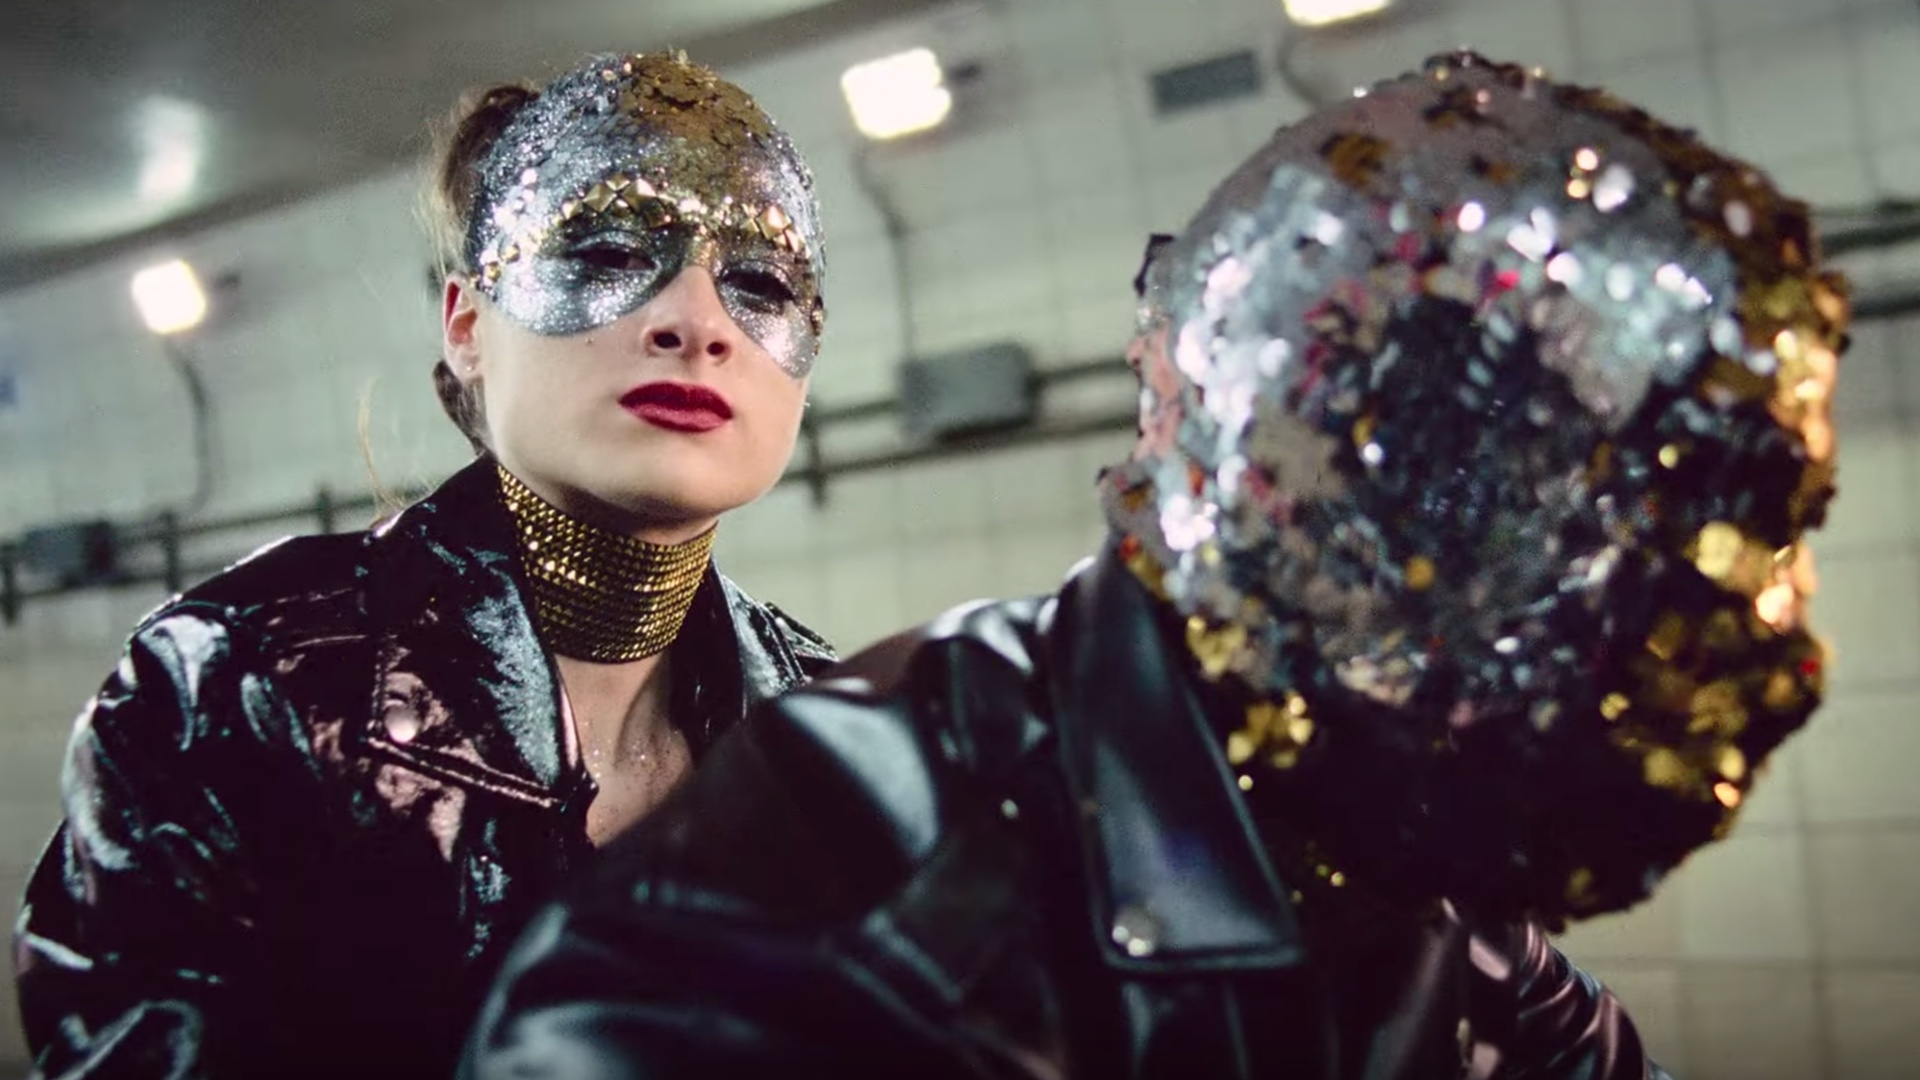 boom reviews Vox Lux